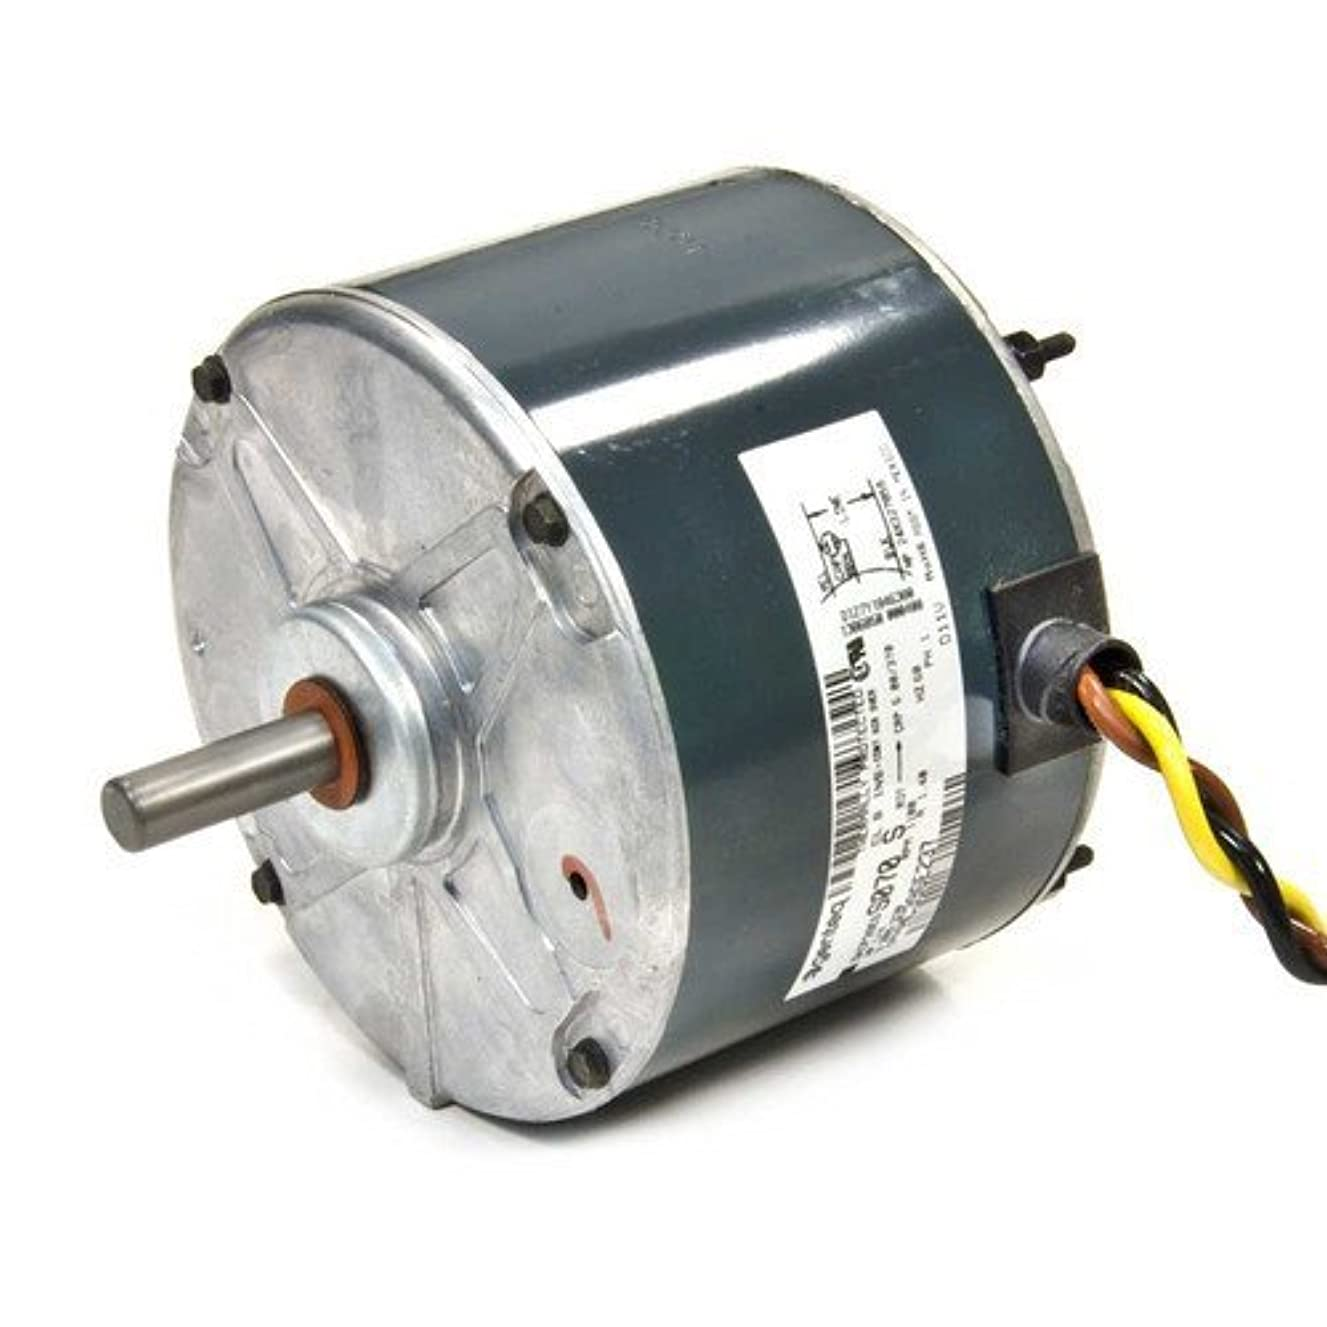 HC33GE233A - Payne OEM Upgraded Replacement Condenser Fan Motor 1/10 HP 230 Volts